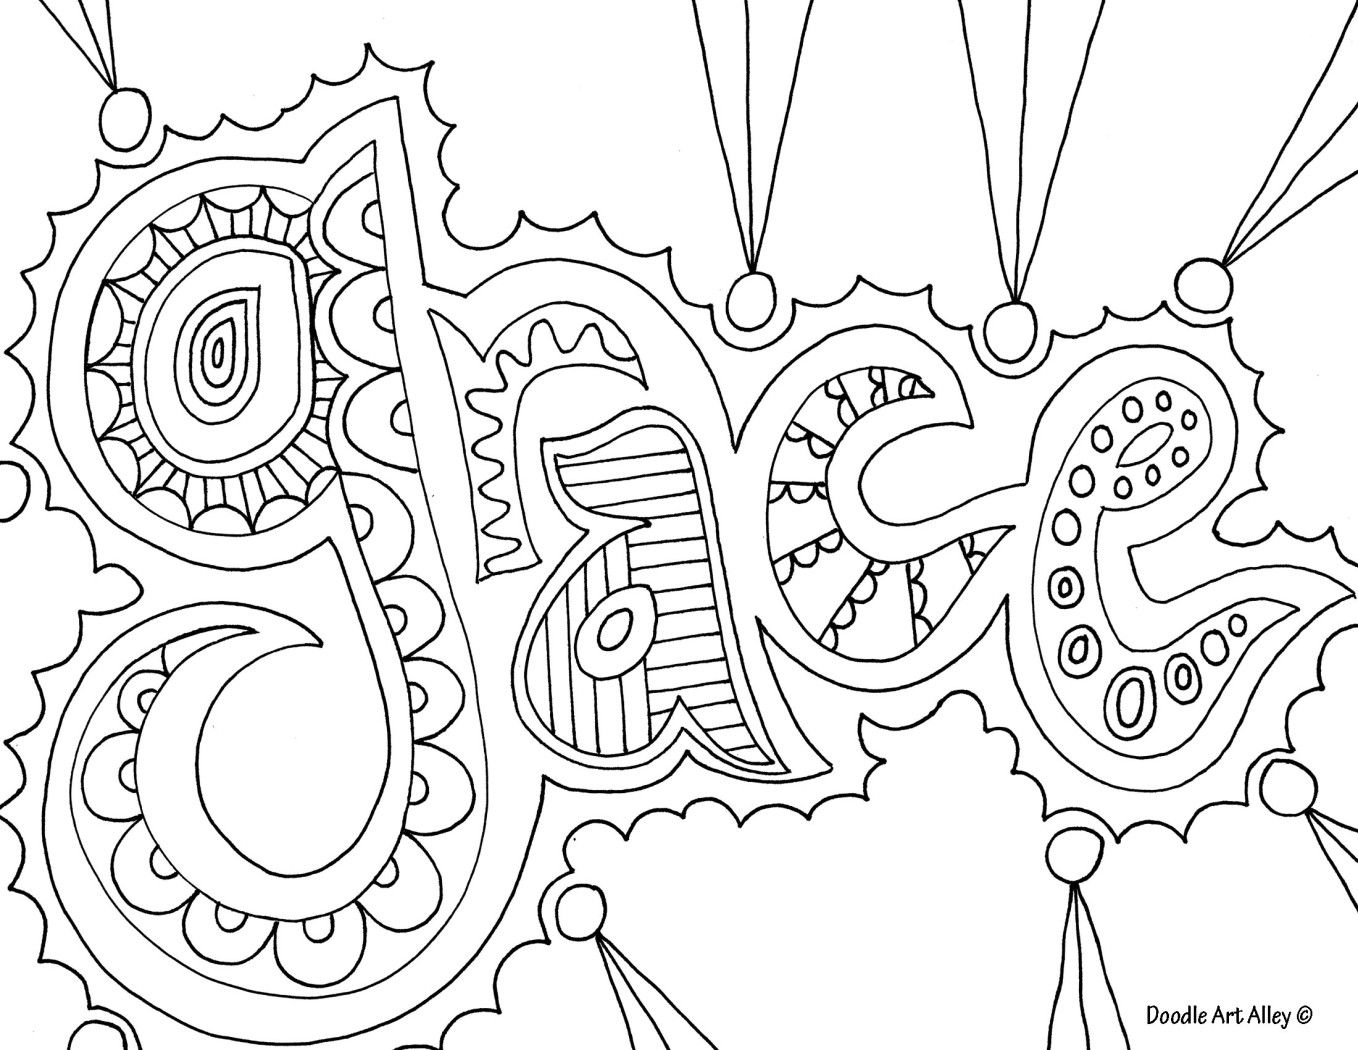 hard cross coloring pages | Doodle art grace - nice coloring page for older kids ...